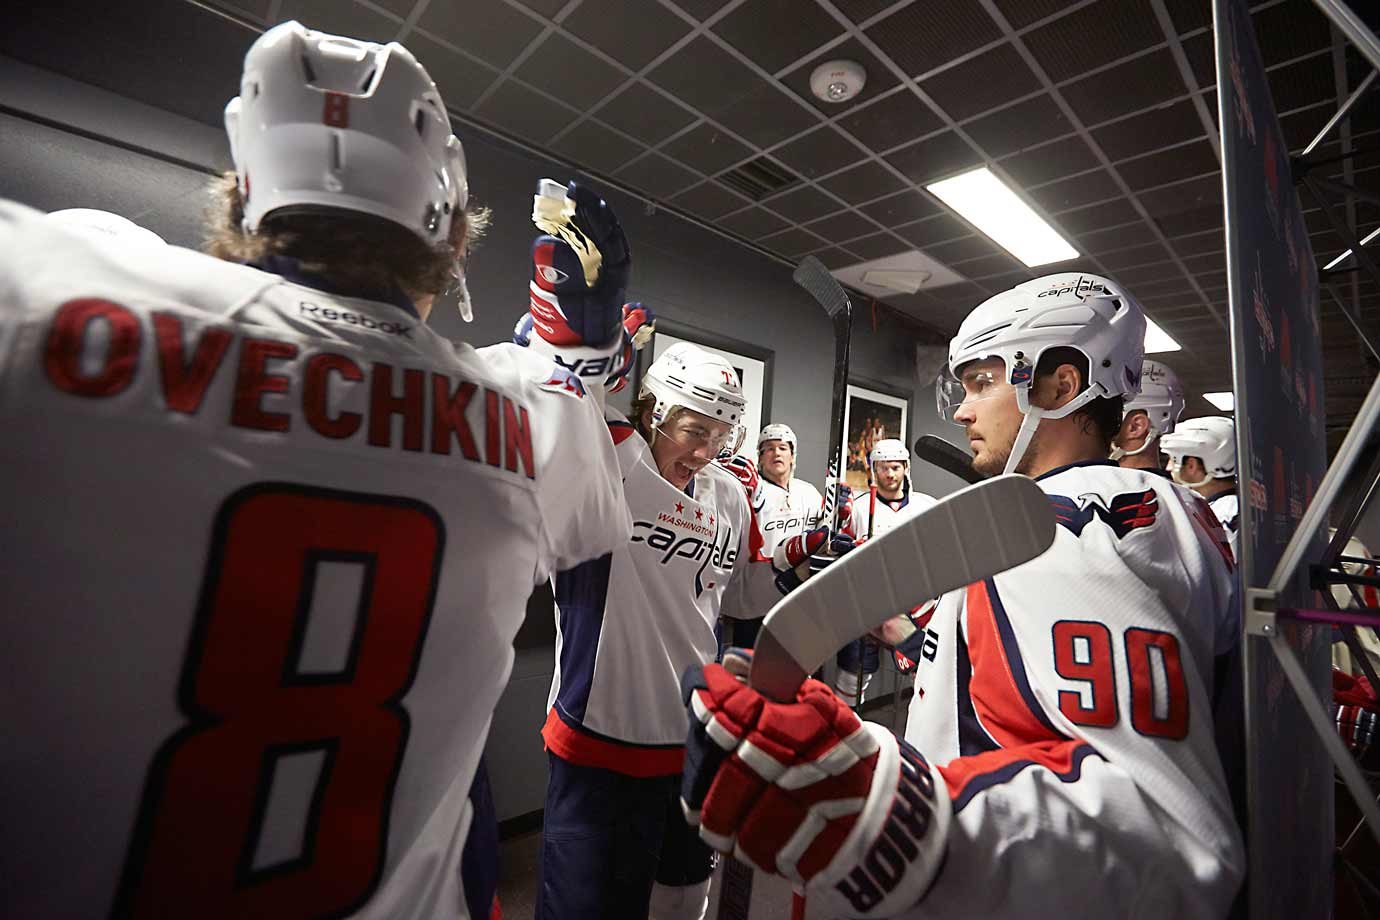 Having done their best to shake off the effects of the previous night's game and prepare for the next tilt, the Capitals share a moment before taking the ice against the Maple Leafs.